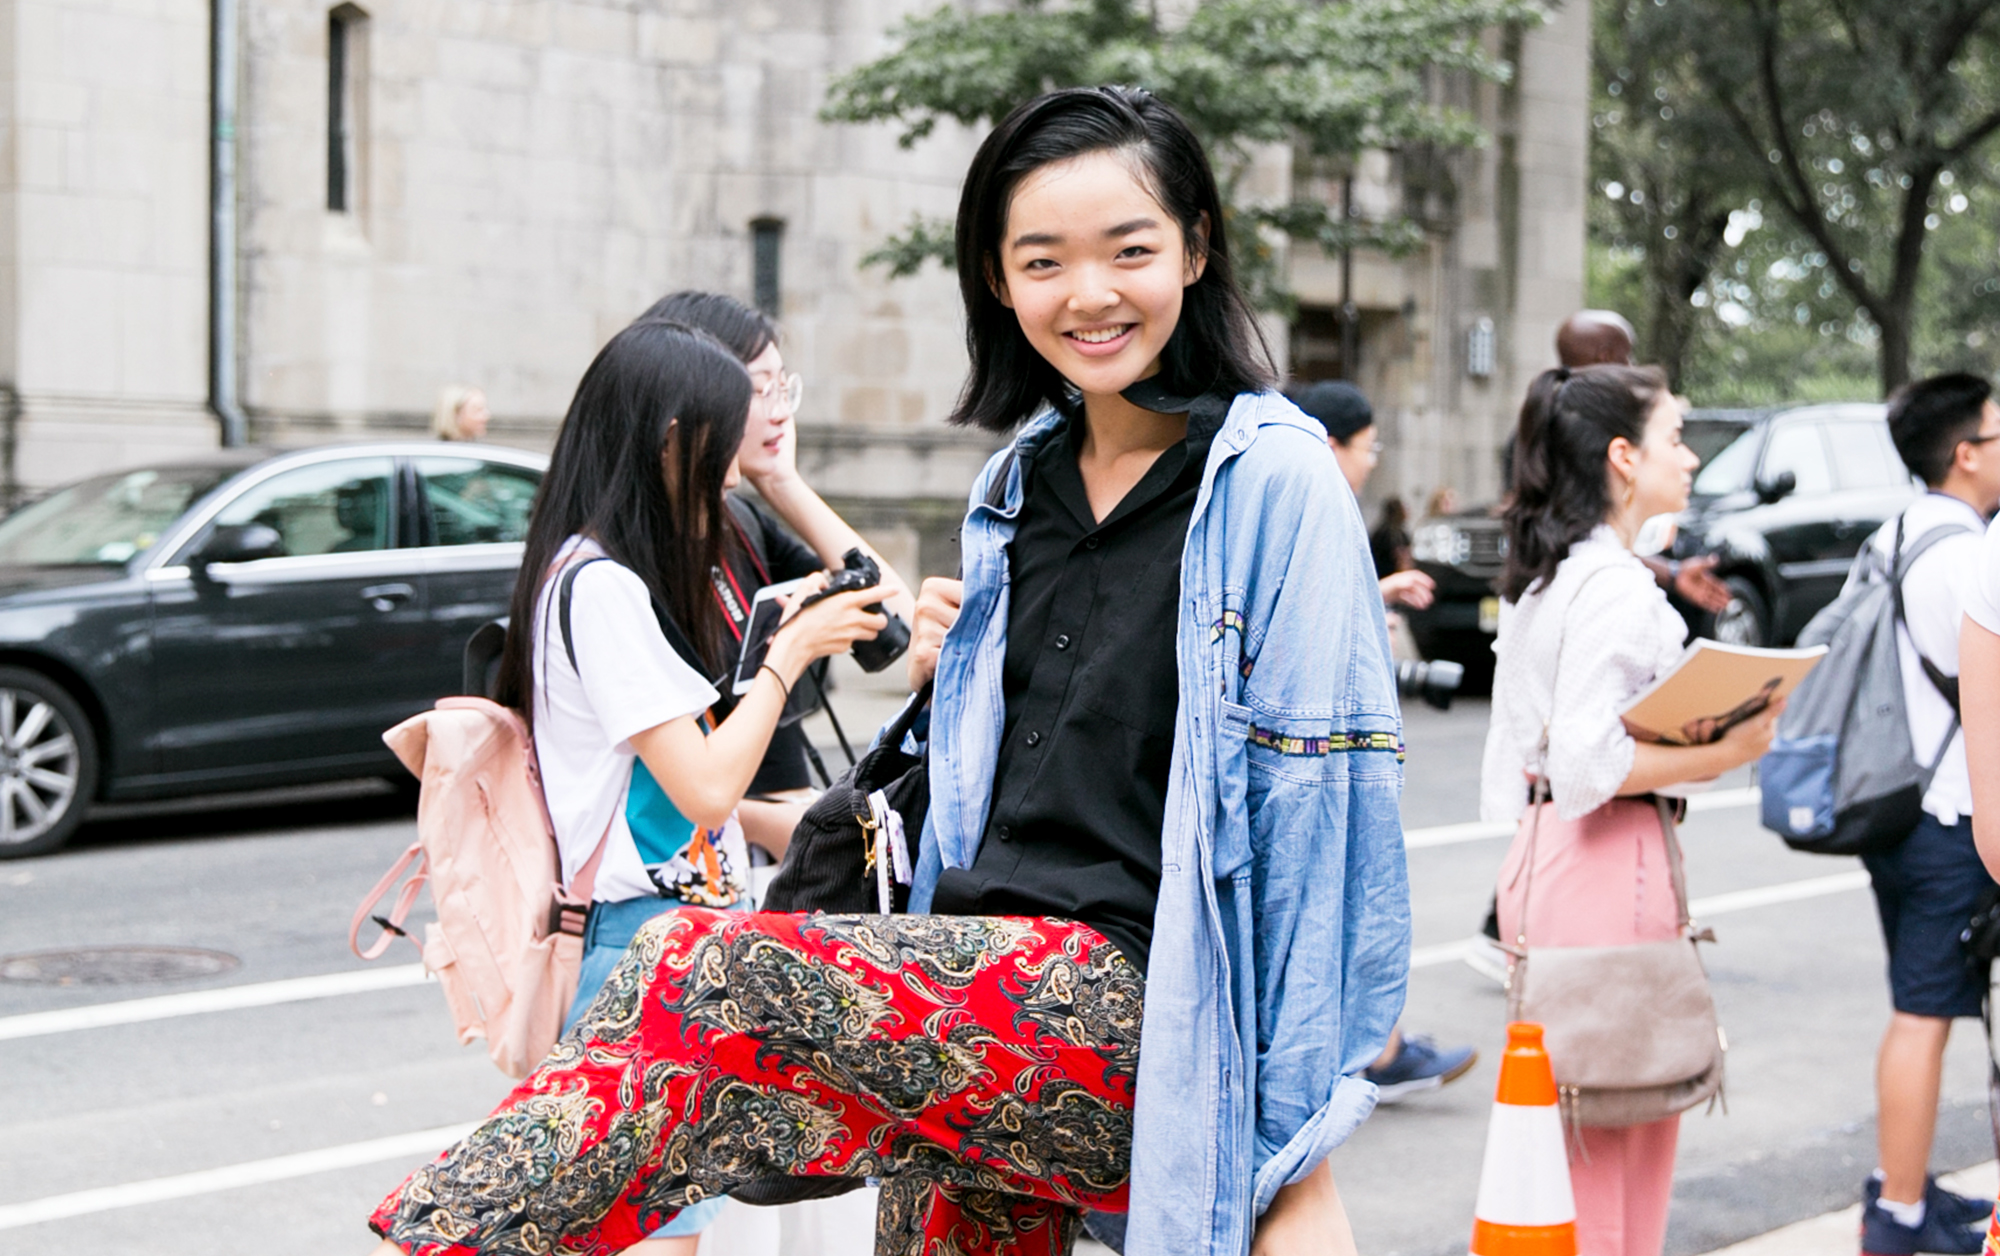 This Local Fashion Model Made Her NYFW Debut With Tory Burch